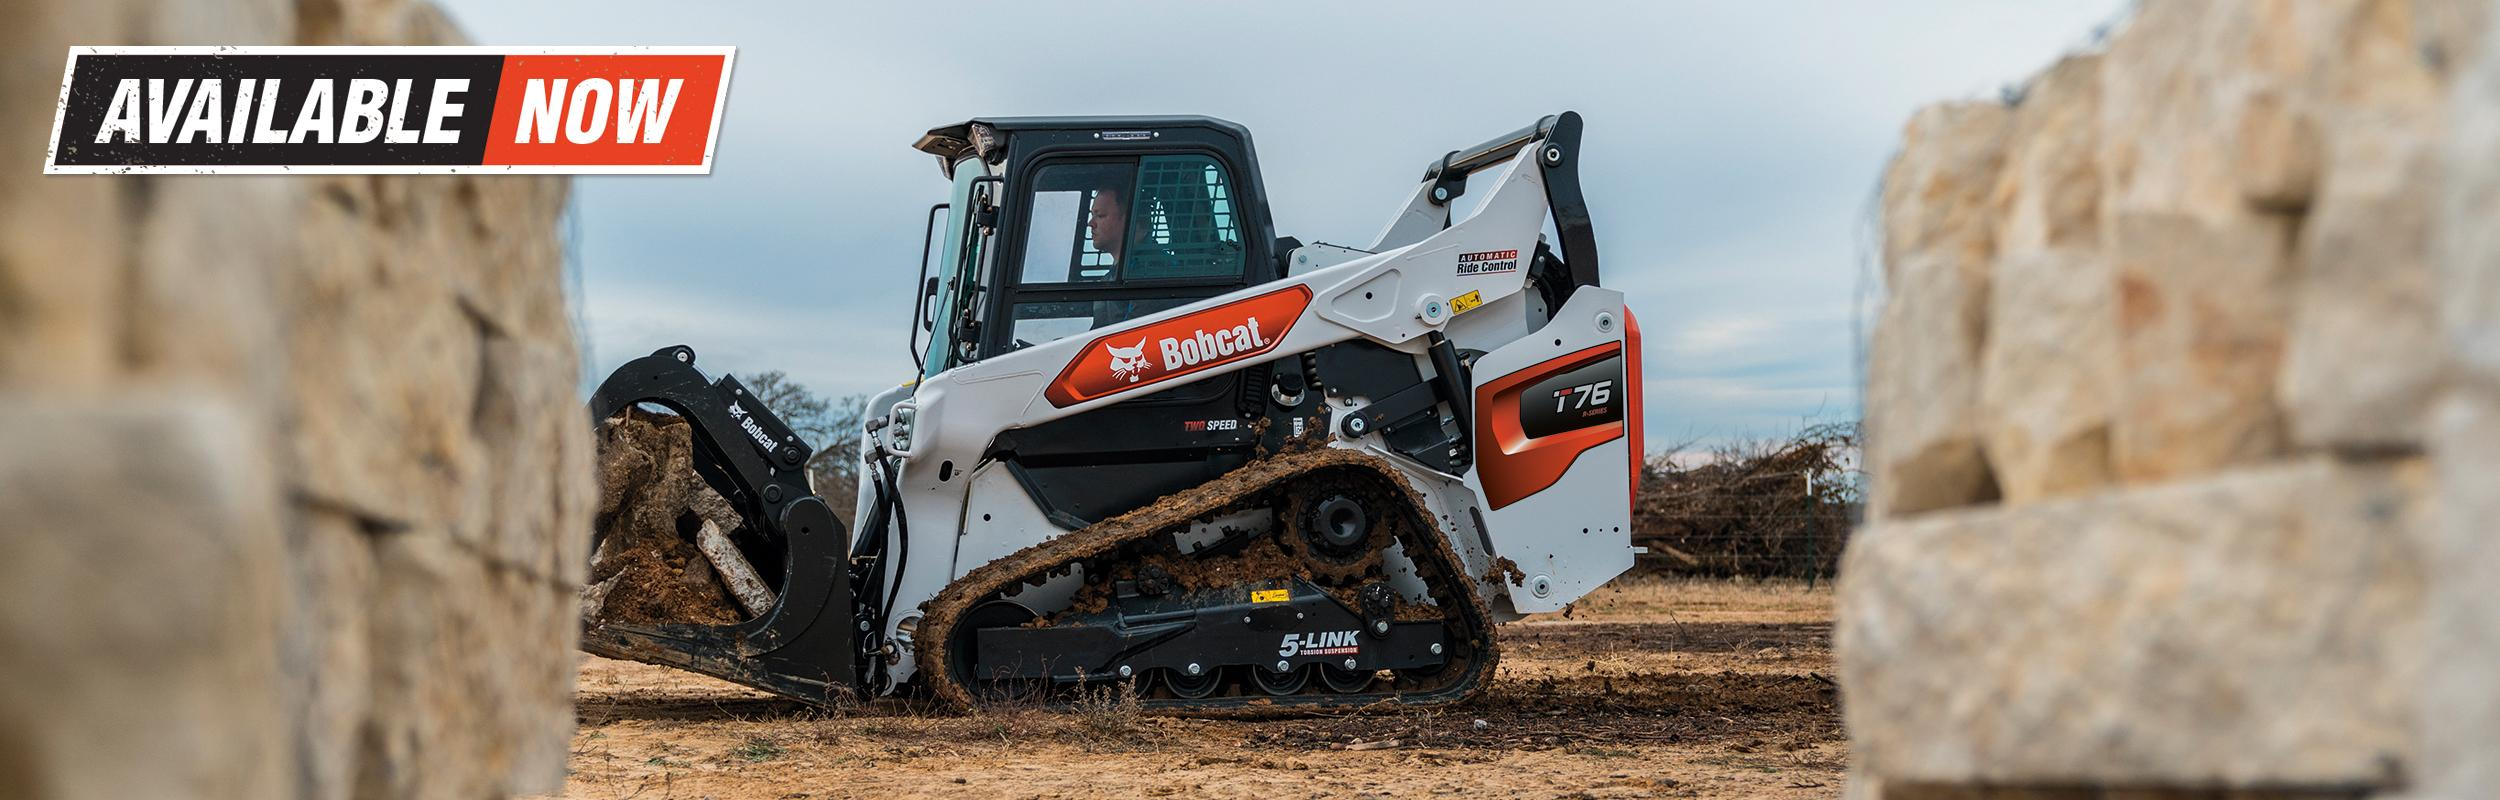 New Bobcat R-Series Compact Track Loader Available In 2020